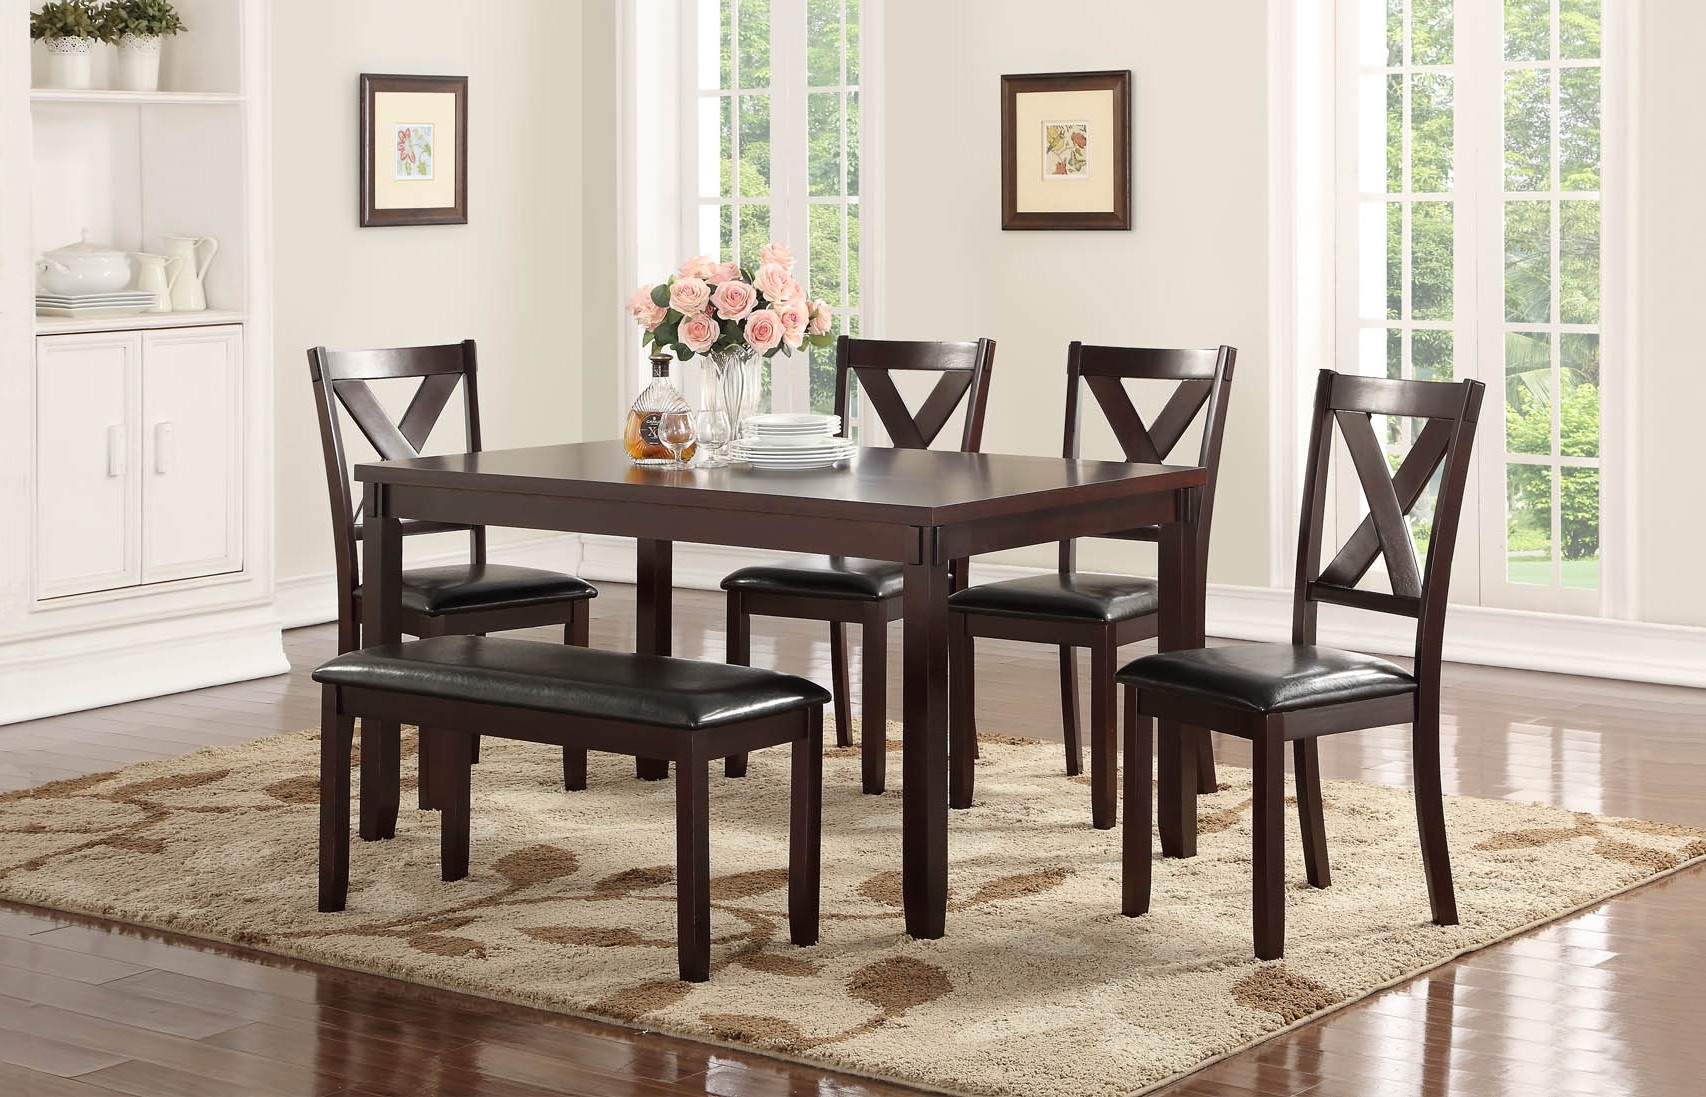 Penelope Collection 6 Pc Dining Set With Bench | Orange County, Ca With Regard To Most Recently Released Penelope 3 Piece Counter Height Wood Dining Sets (View 13 of 20)